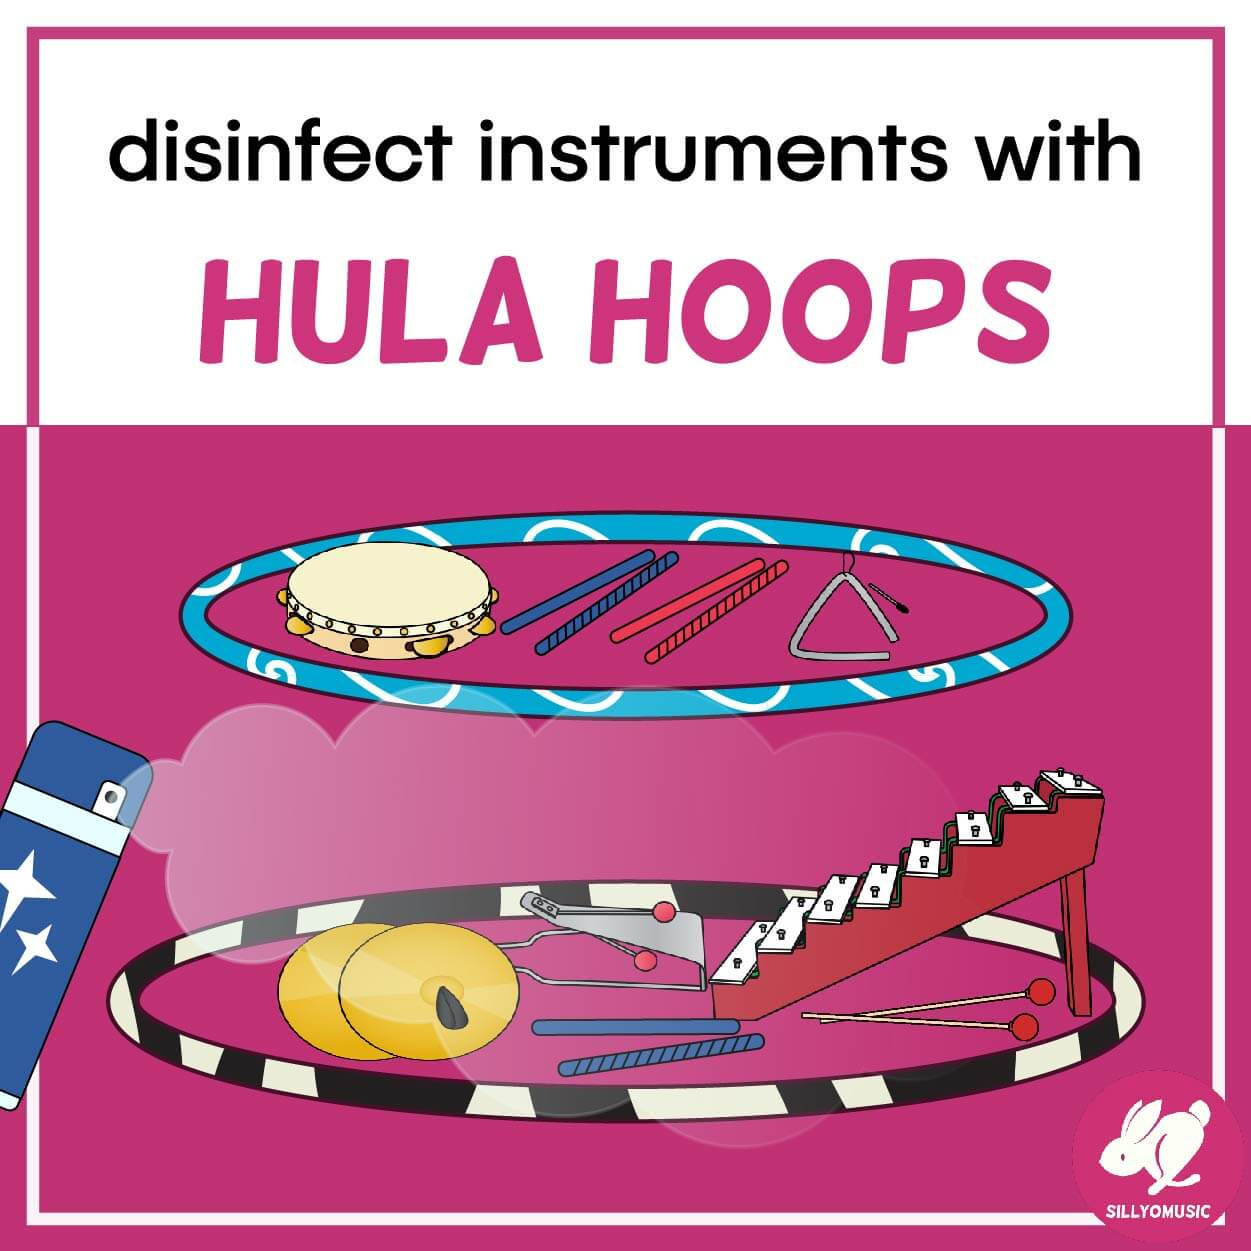 How to Disinfect Instruments the Quick & Easy Way With Hula Hoops